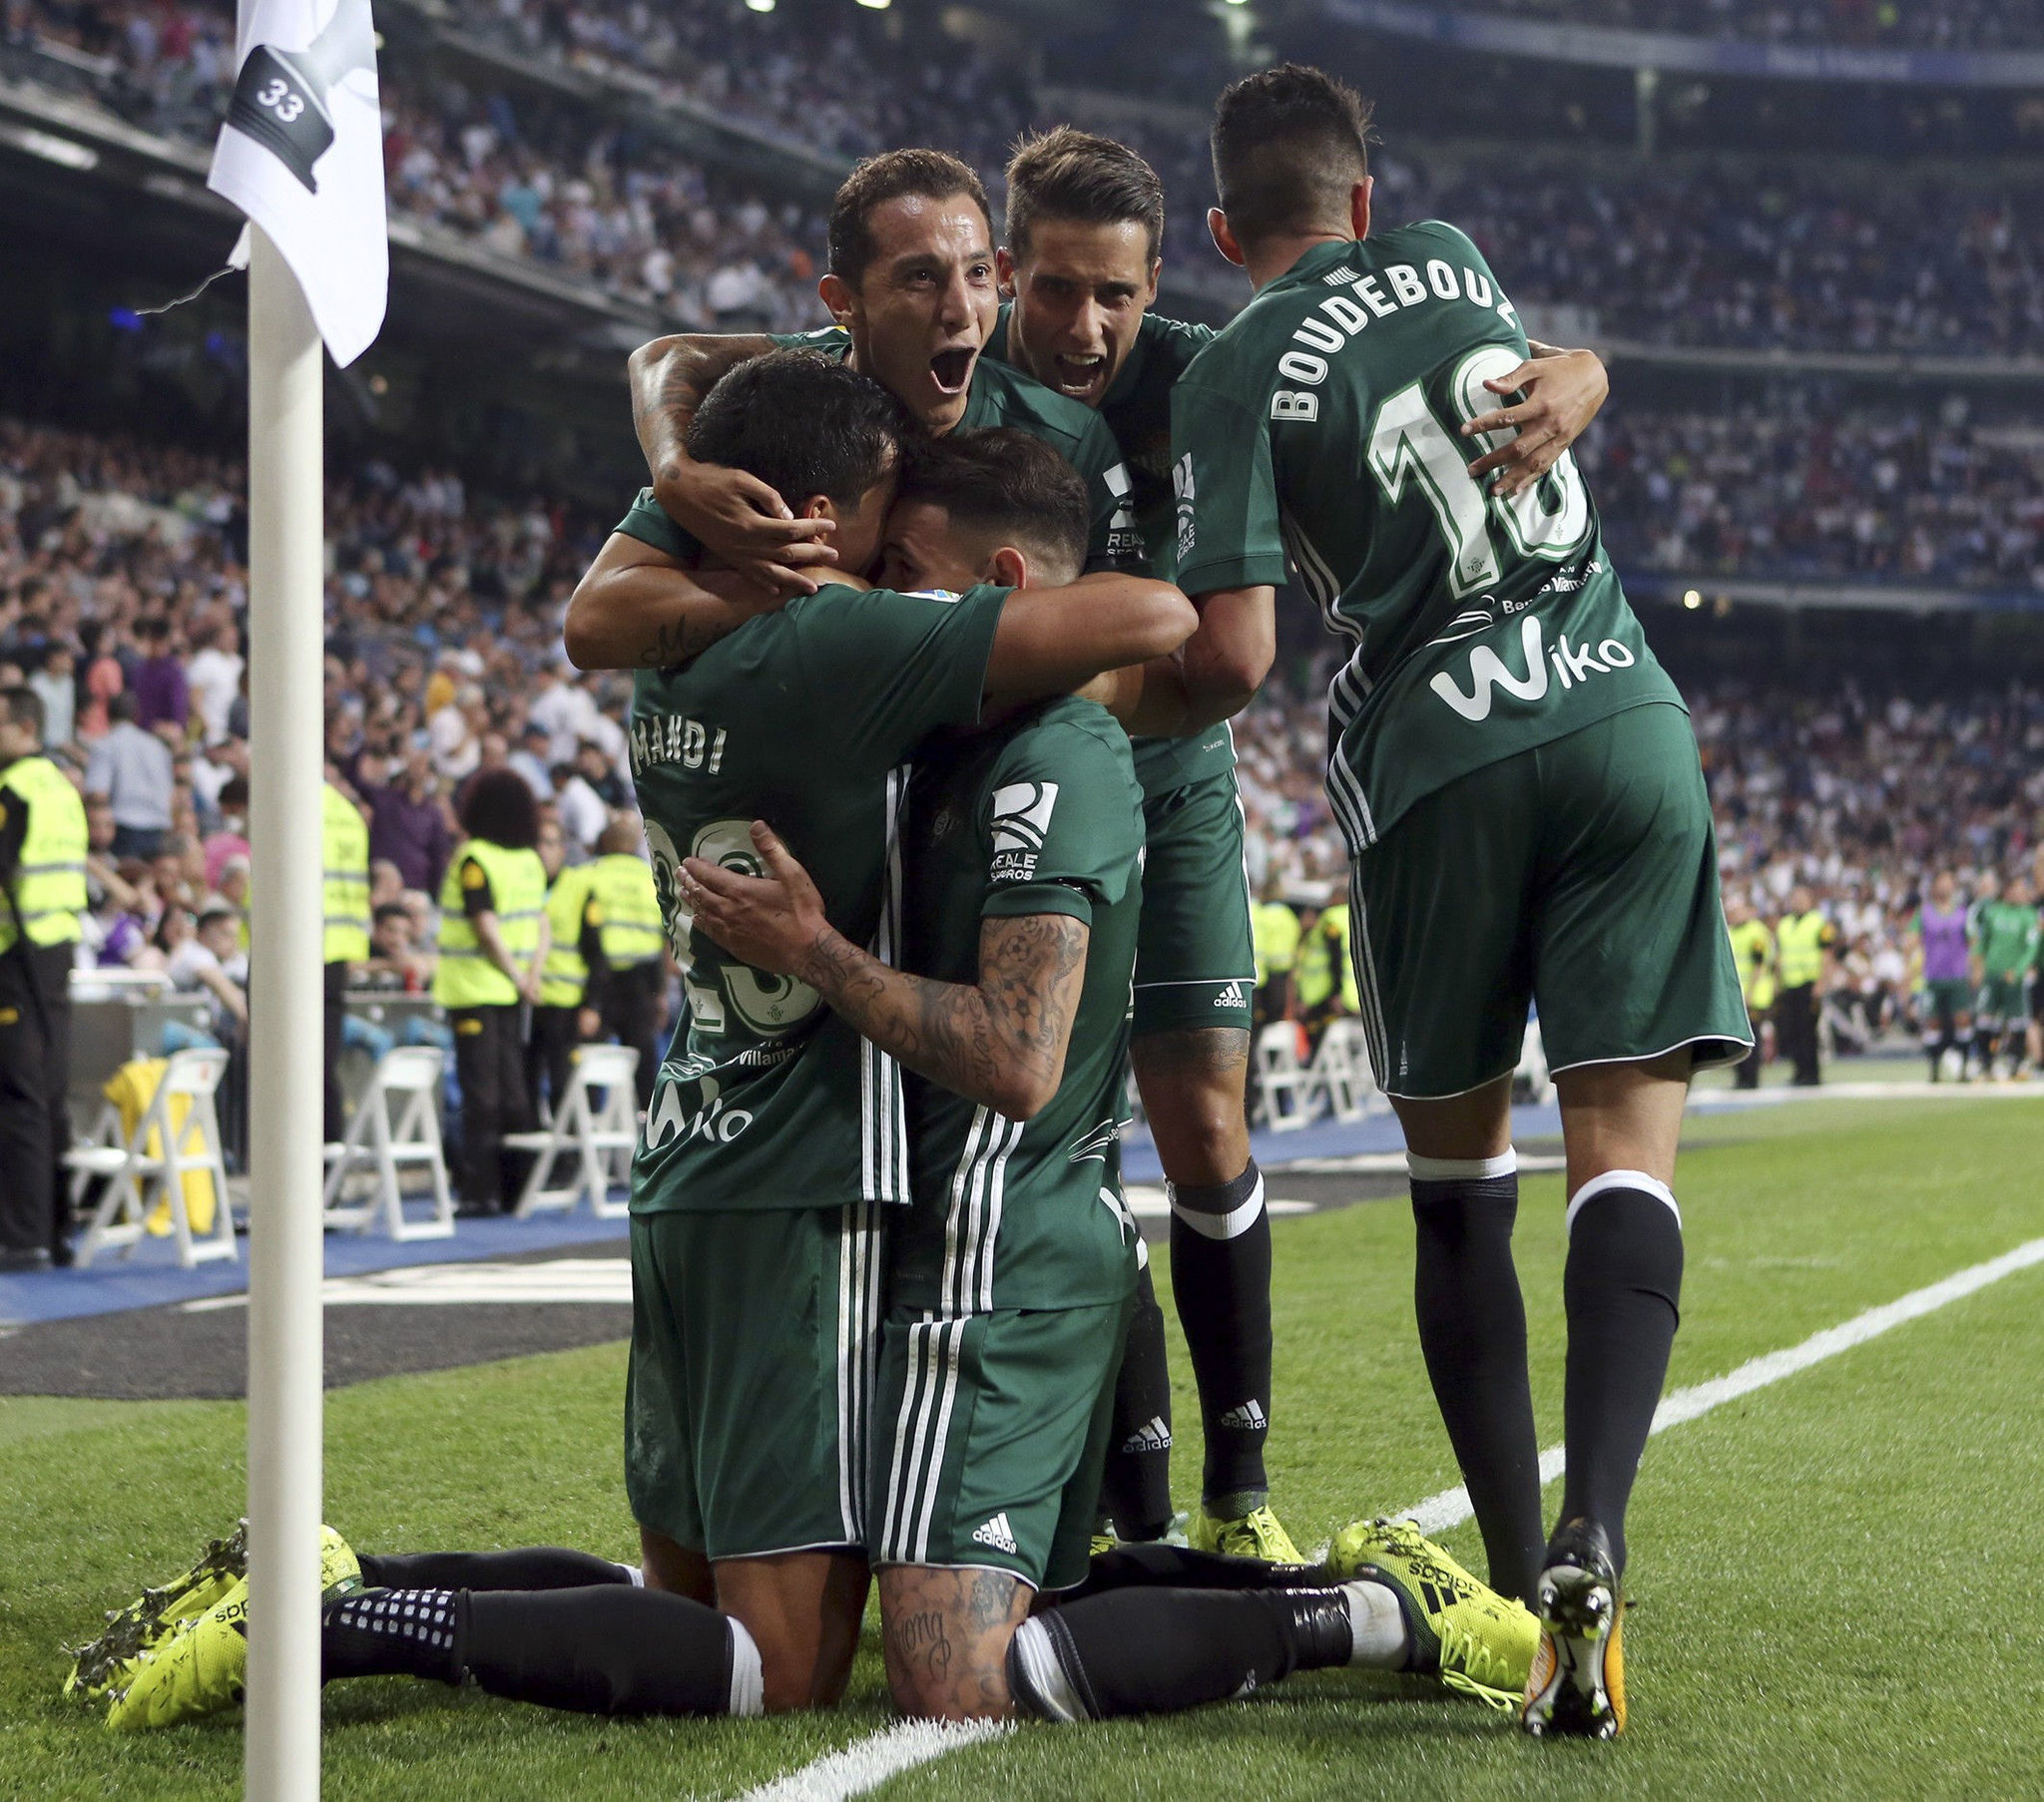 The best images of Real Madrid vs. Real Betis in LaLiga ...